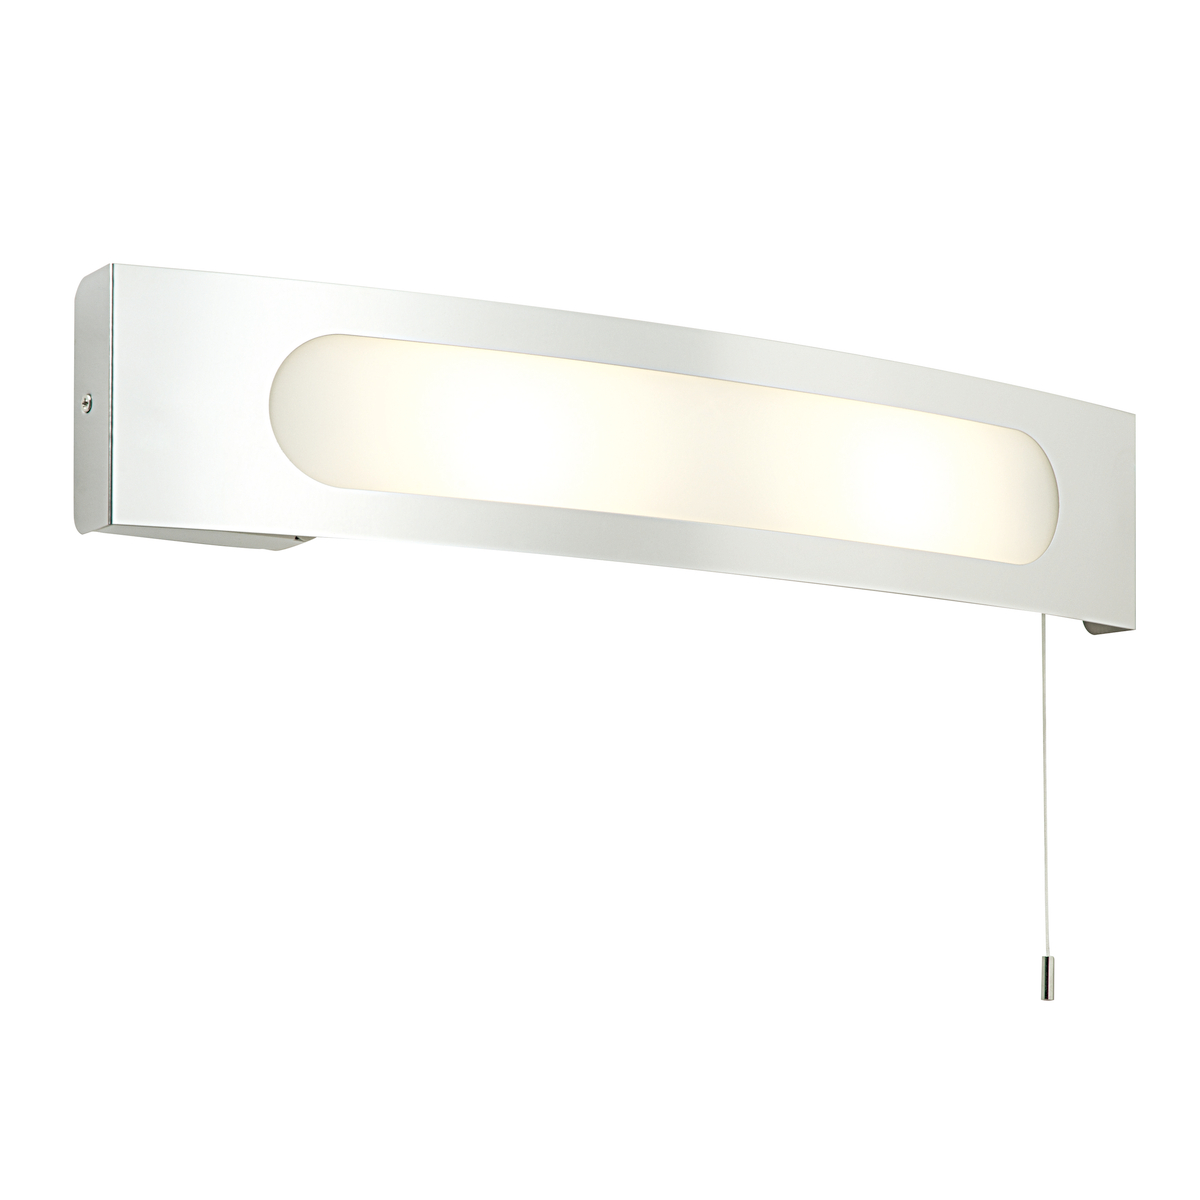 Modern Decorative E14 Curved IP44 Pull Cord Bathroom Wall Light W/ Shaver Socket